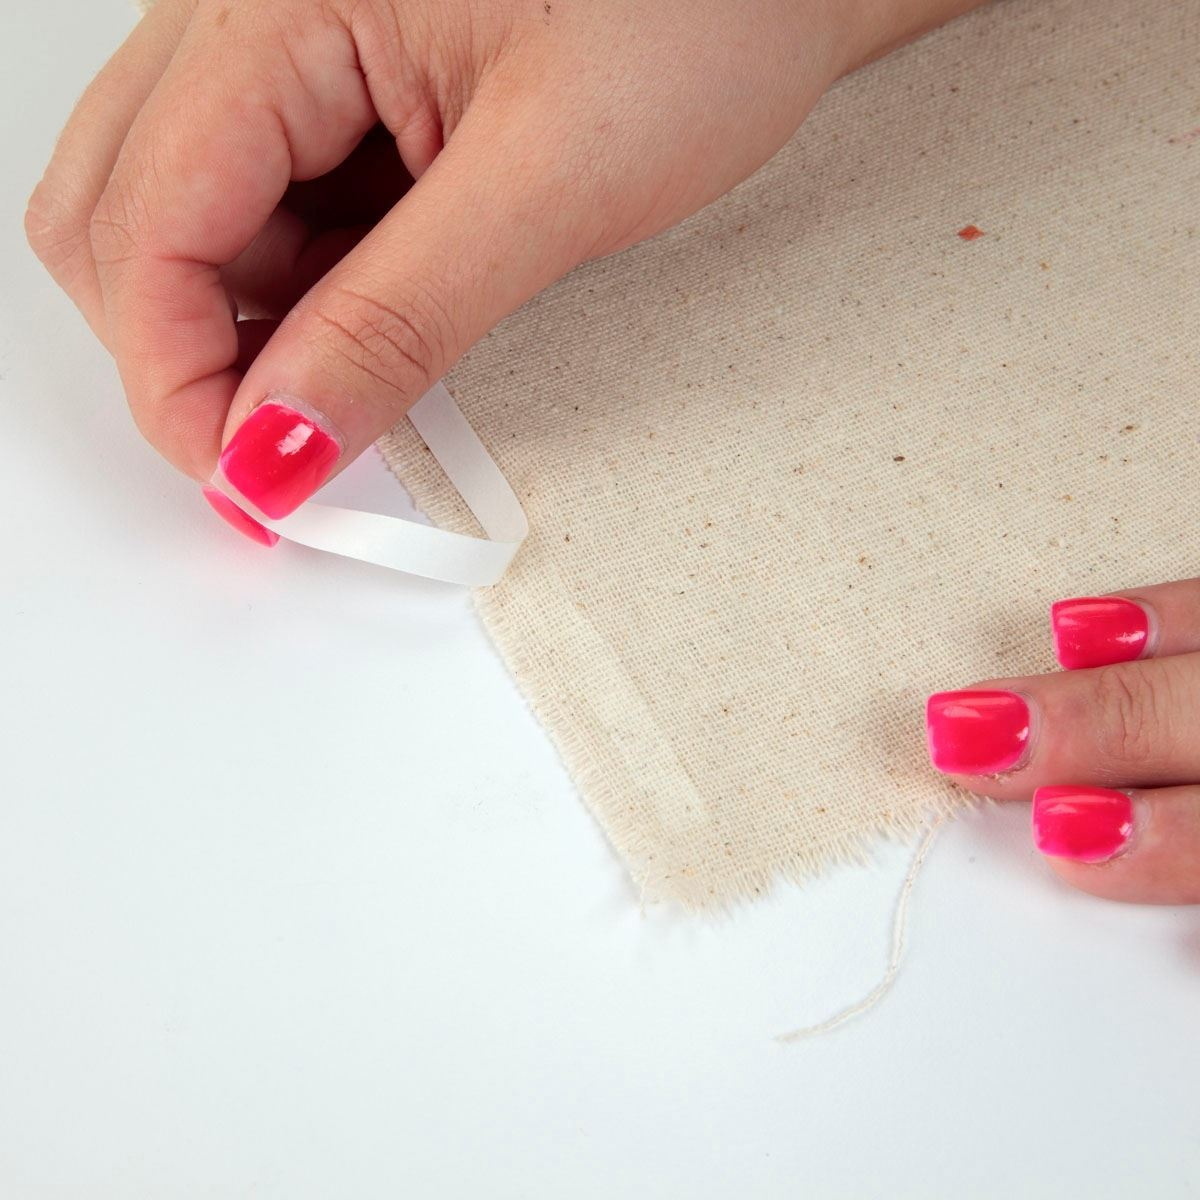 Aleene's® Fabric Fusion® Permanent Fabric Tape application removing protection